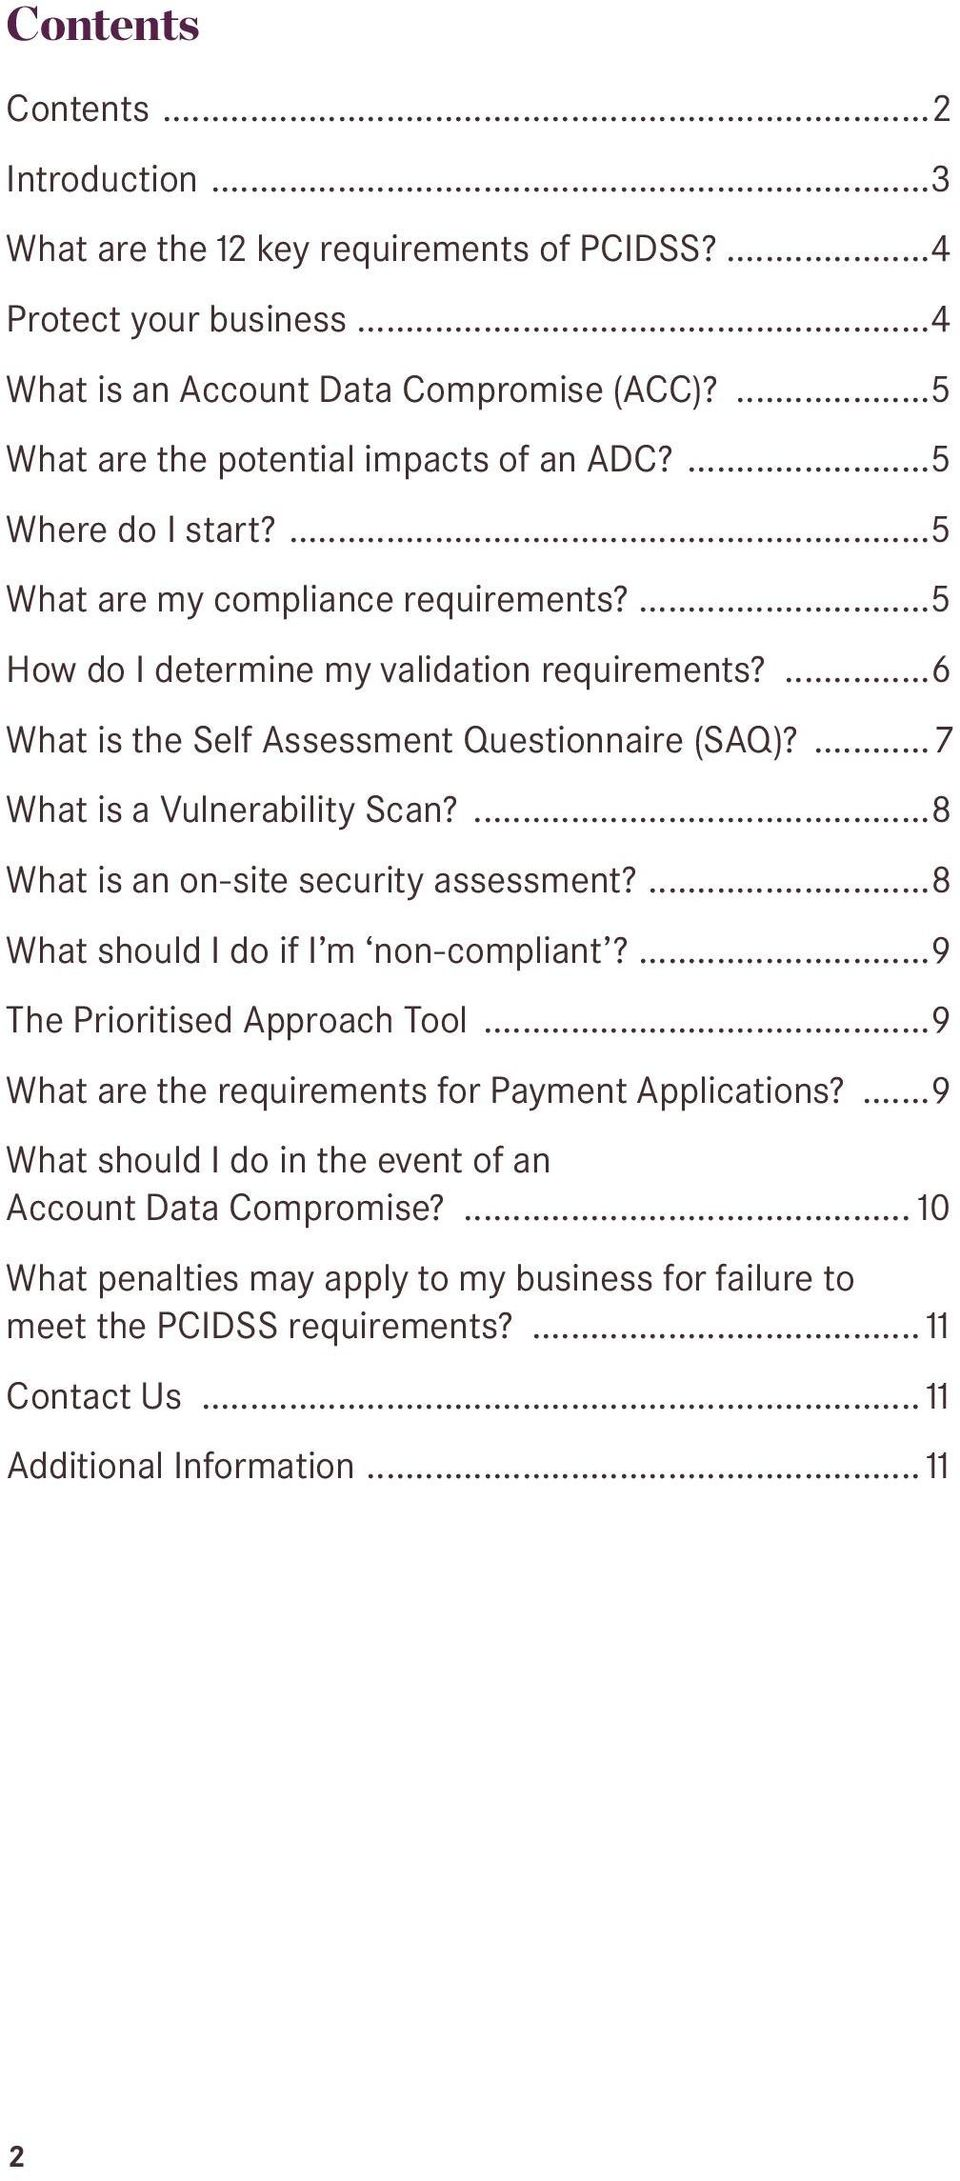 ... 7 What is a Vulnerability Scan?...8 What is an on-site security assessment?...8 What should I do if I m non-compliant?...9 The Prioritised Approach Tool.